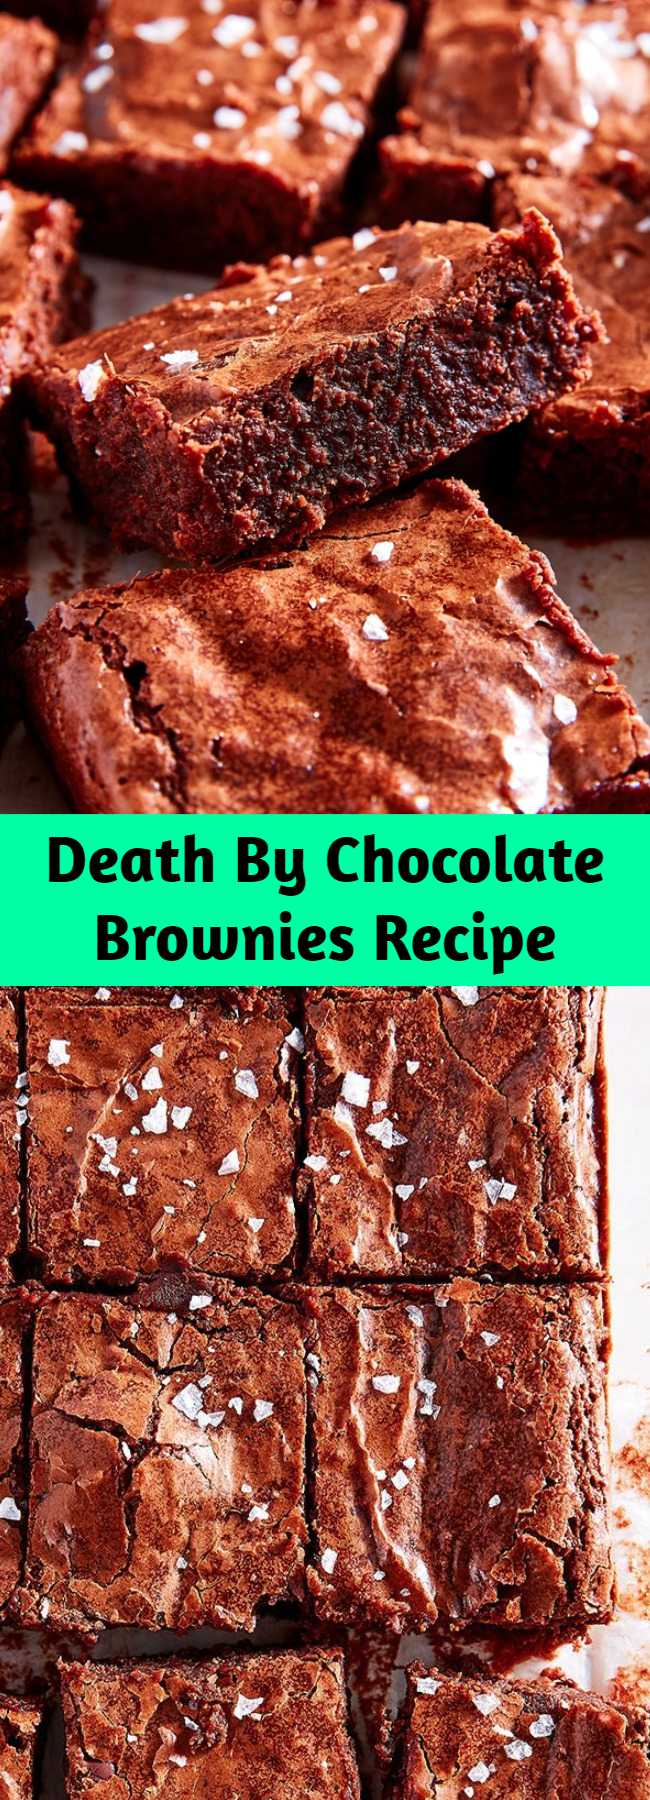 Death By Chocolate Brownies Recipe - Death By Chocolate Brownies Recipe - Check out this easy recipe for the best ever chocolate brownies. Fudgy on the inside with that iconic crackly top, these brownies will not fail you. These mighttt be the best brownies you ever make.